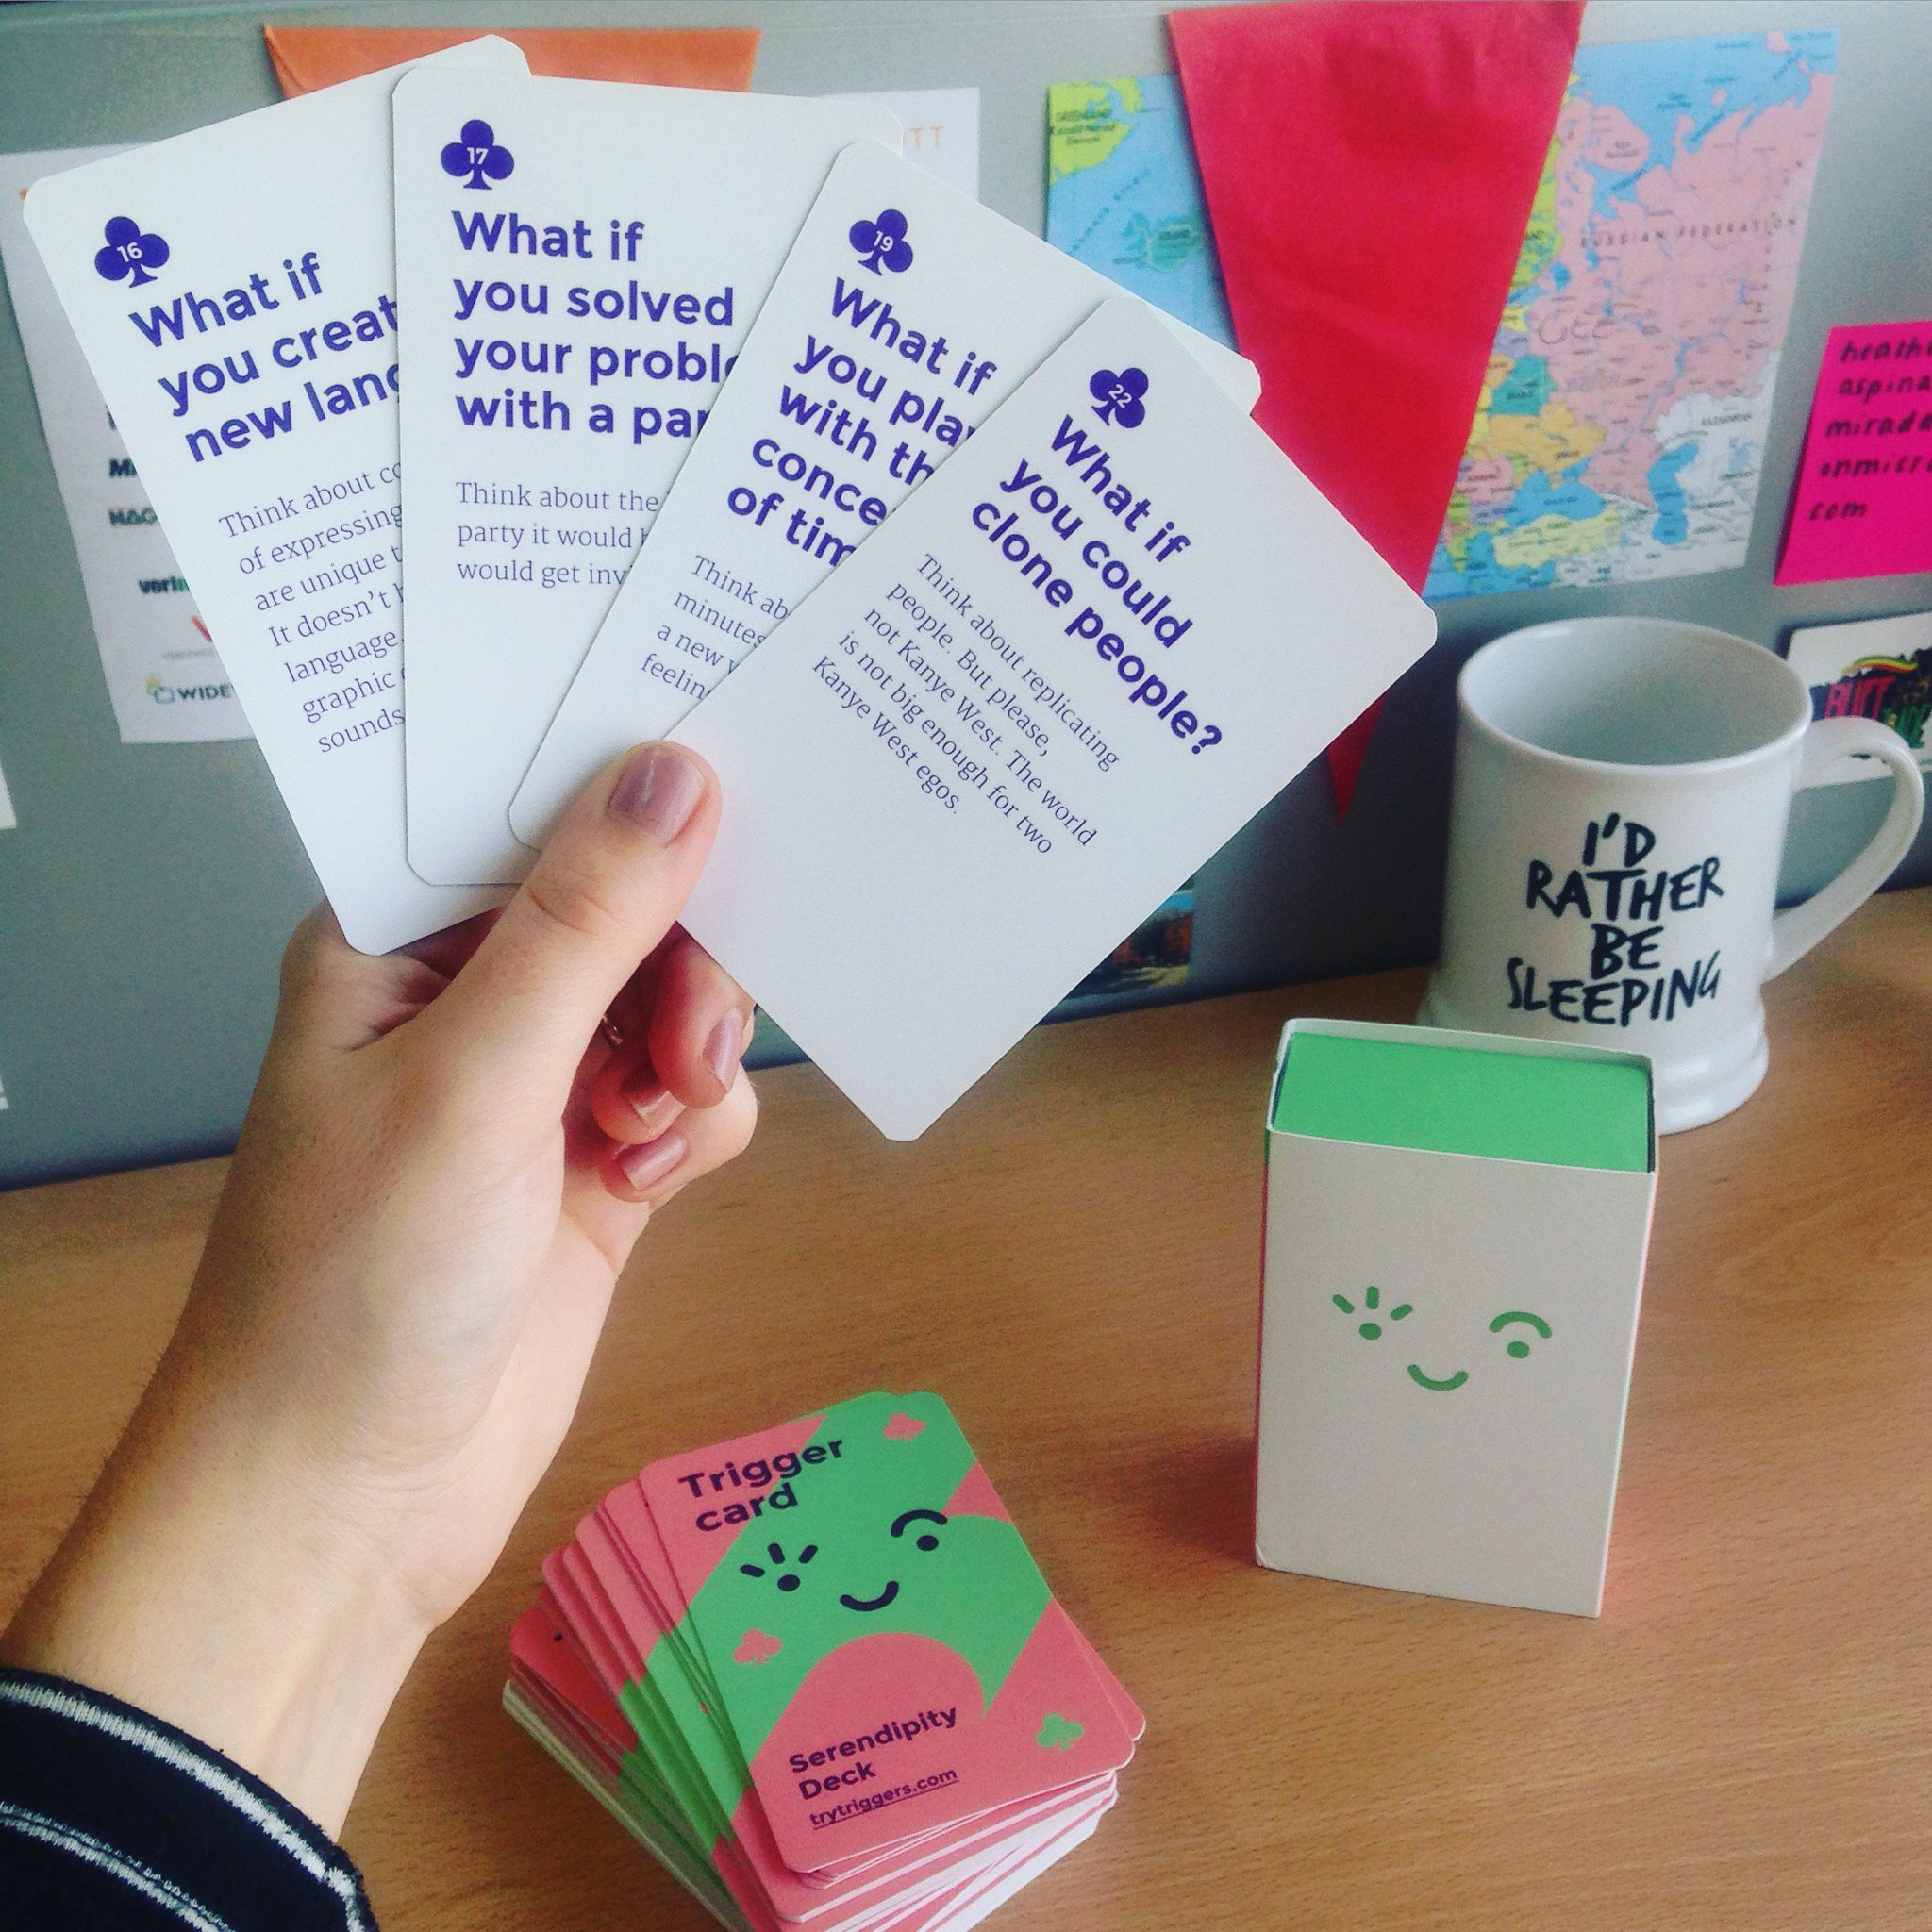 We can't wait to get our creative juices flowing with our brand new deck of Serendipity cards from @trytriggers 🙌 #ideation #designthinking https://t.co/FNr2HTpCVr